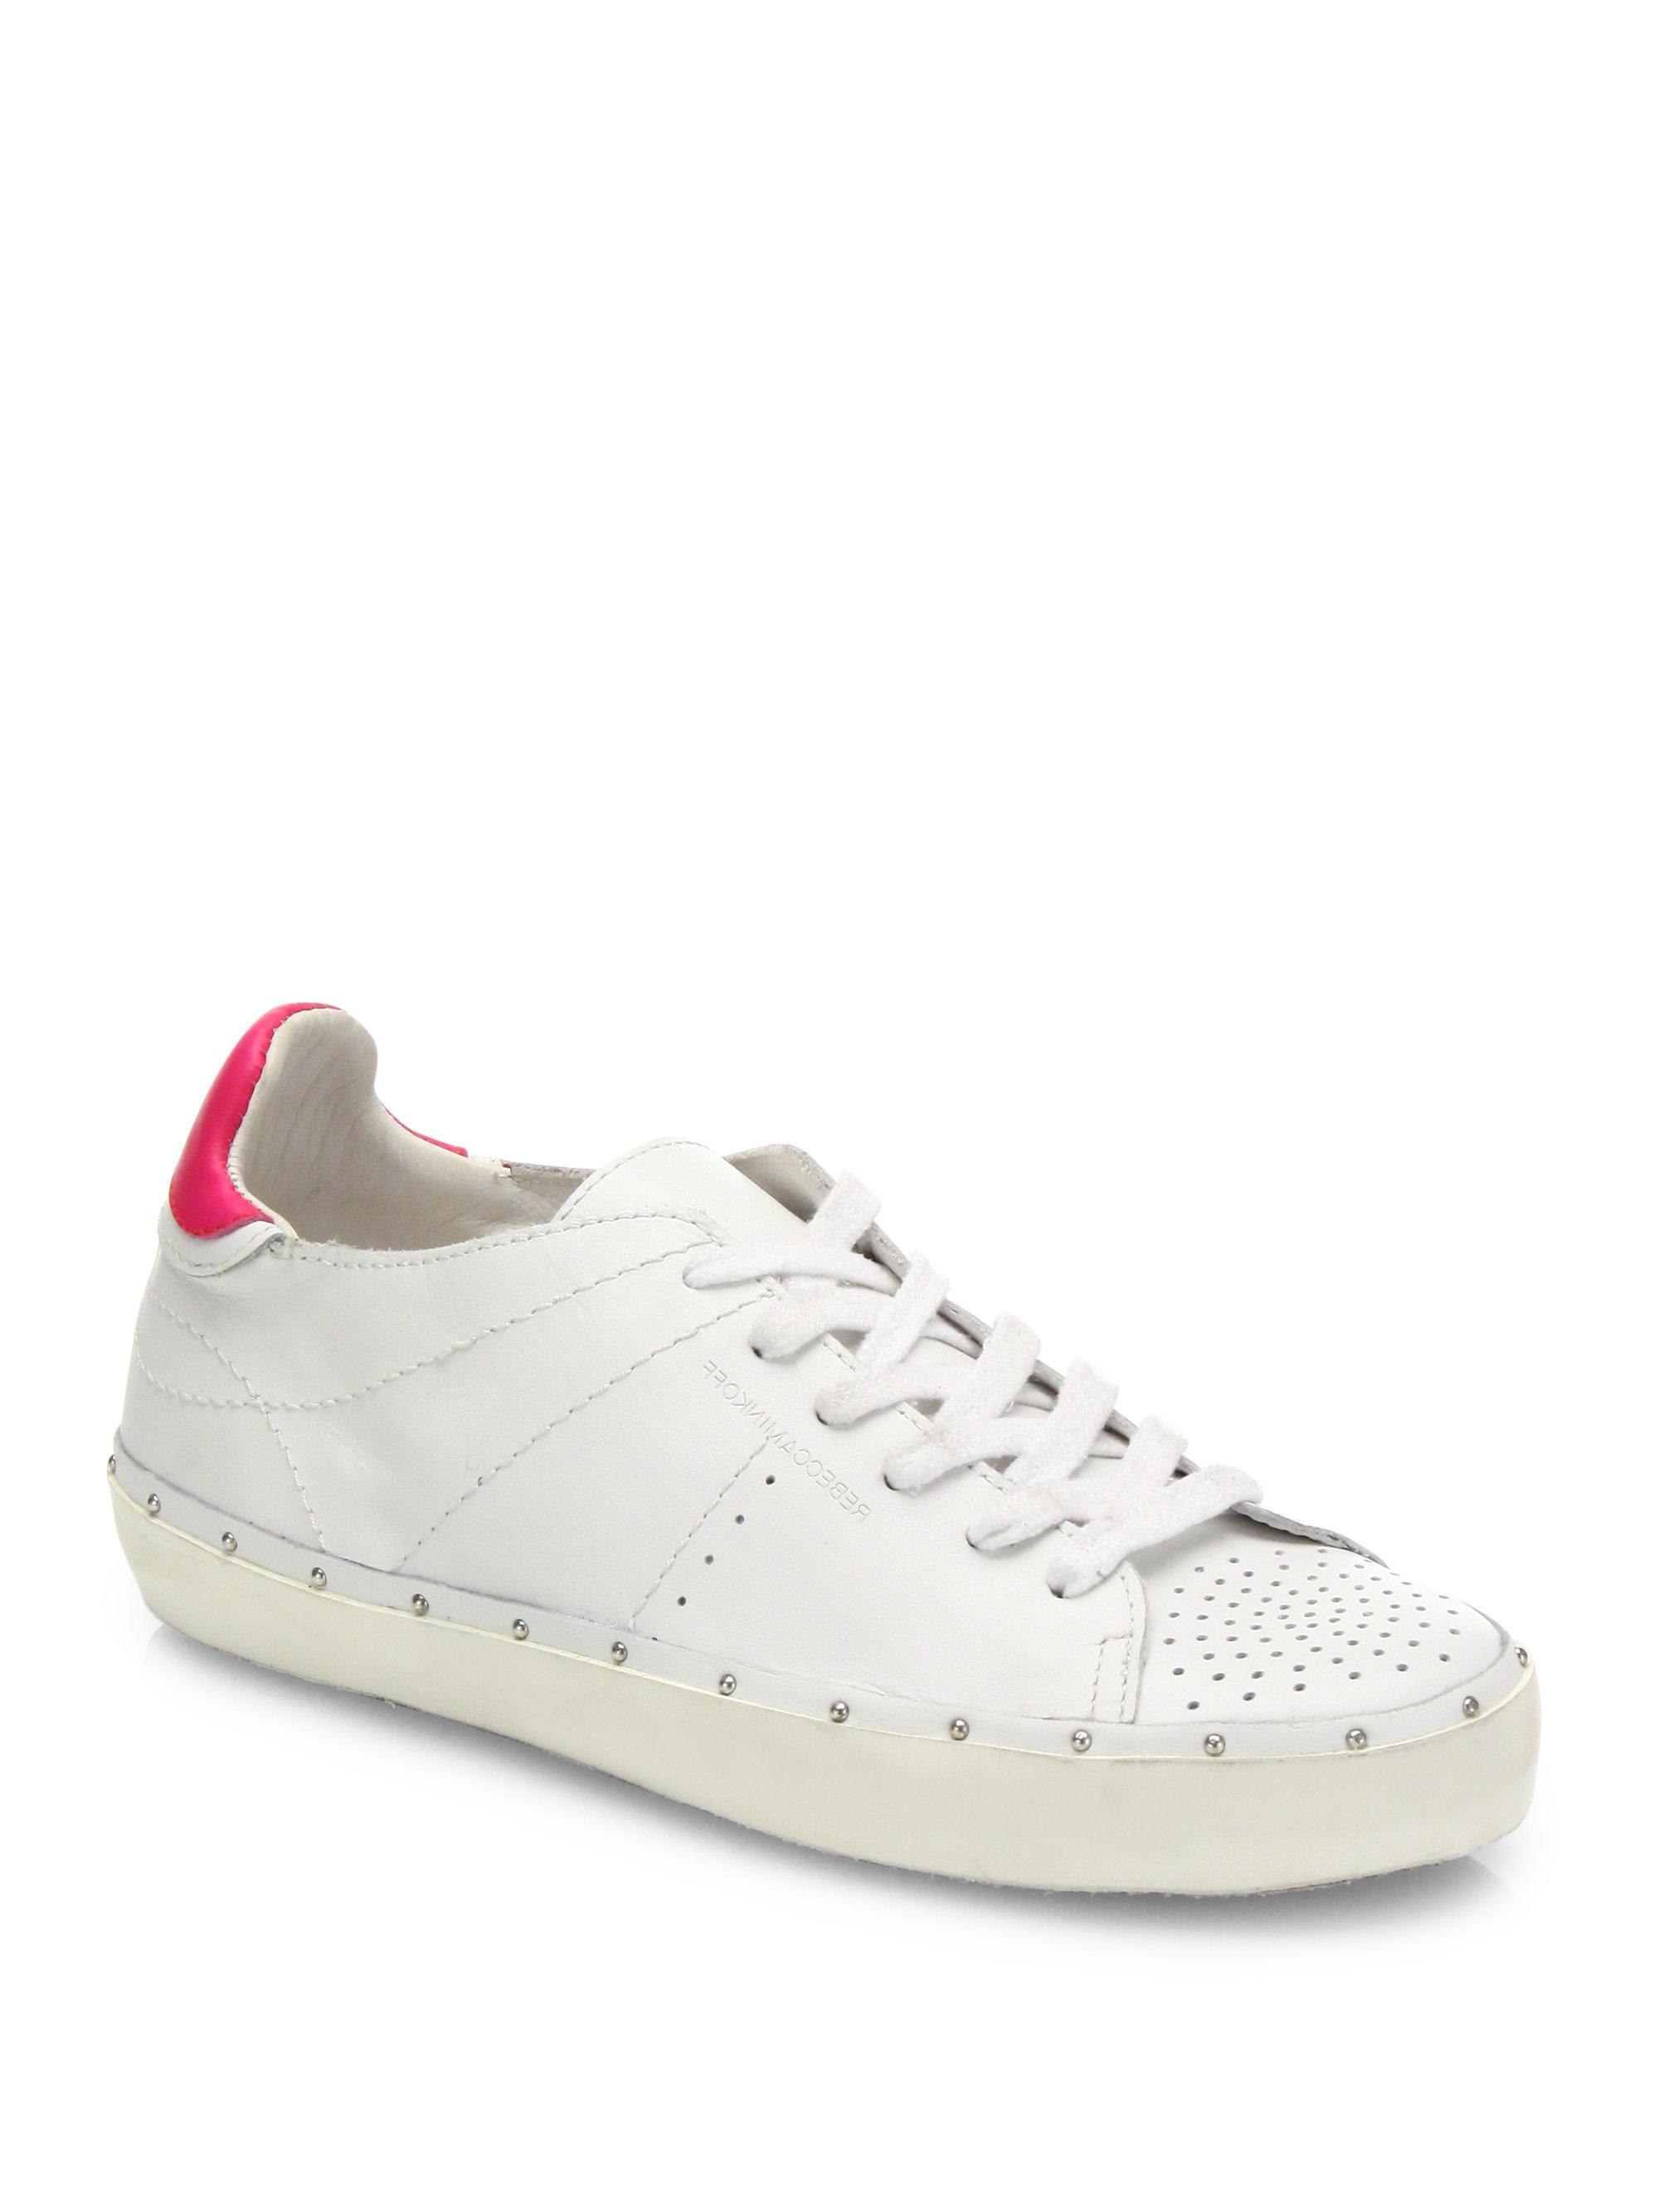 Lyst - Rebecca Minkoff Michell Leather Sneakers in White d653e0254d5